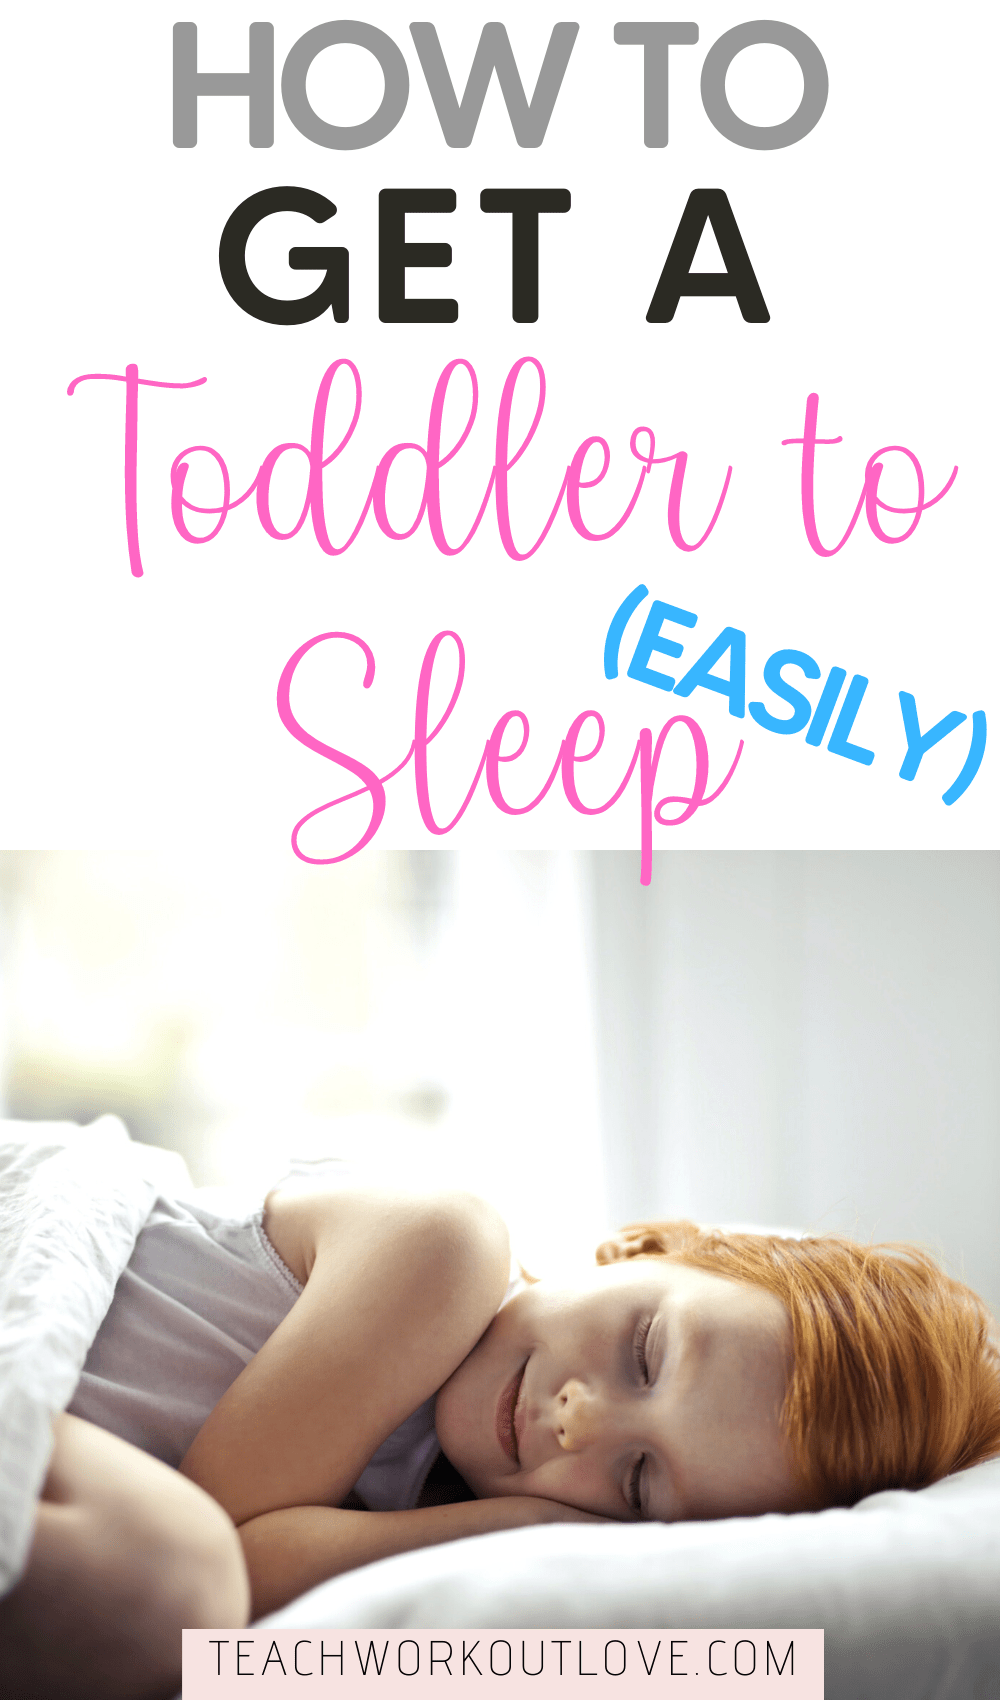 As you can imagine with every new change there are issues of toddlers not wanting to go to sleep. Here are tips to get an upset toddler to sleep.